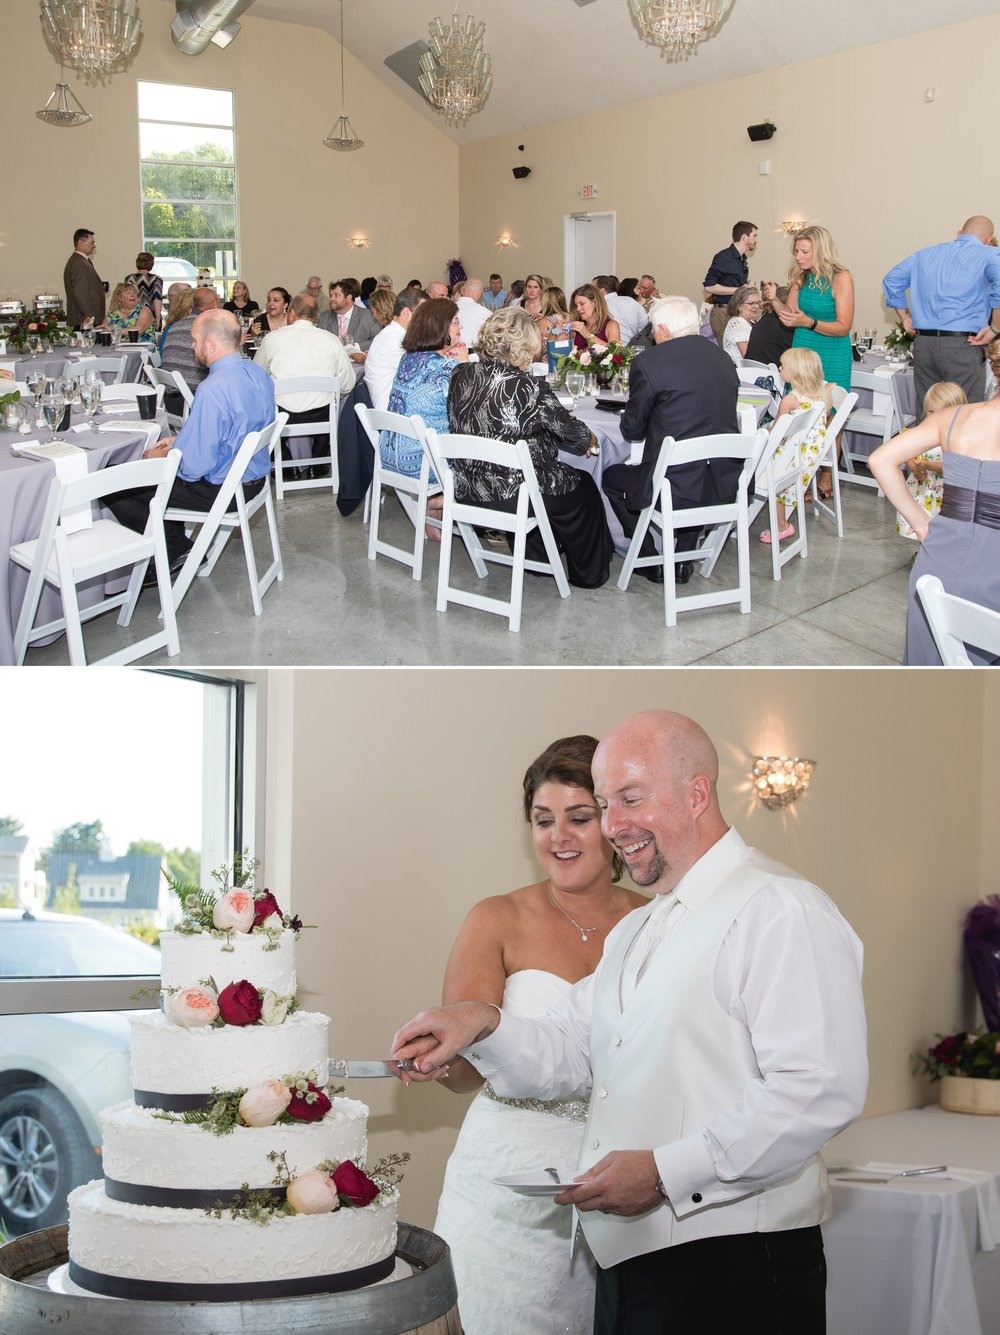 017-Buckeye-lake-winery-wedding-venue-columbus-ohio-wedding-muschlitz-photography-reception-02.JPG